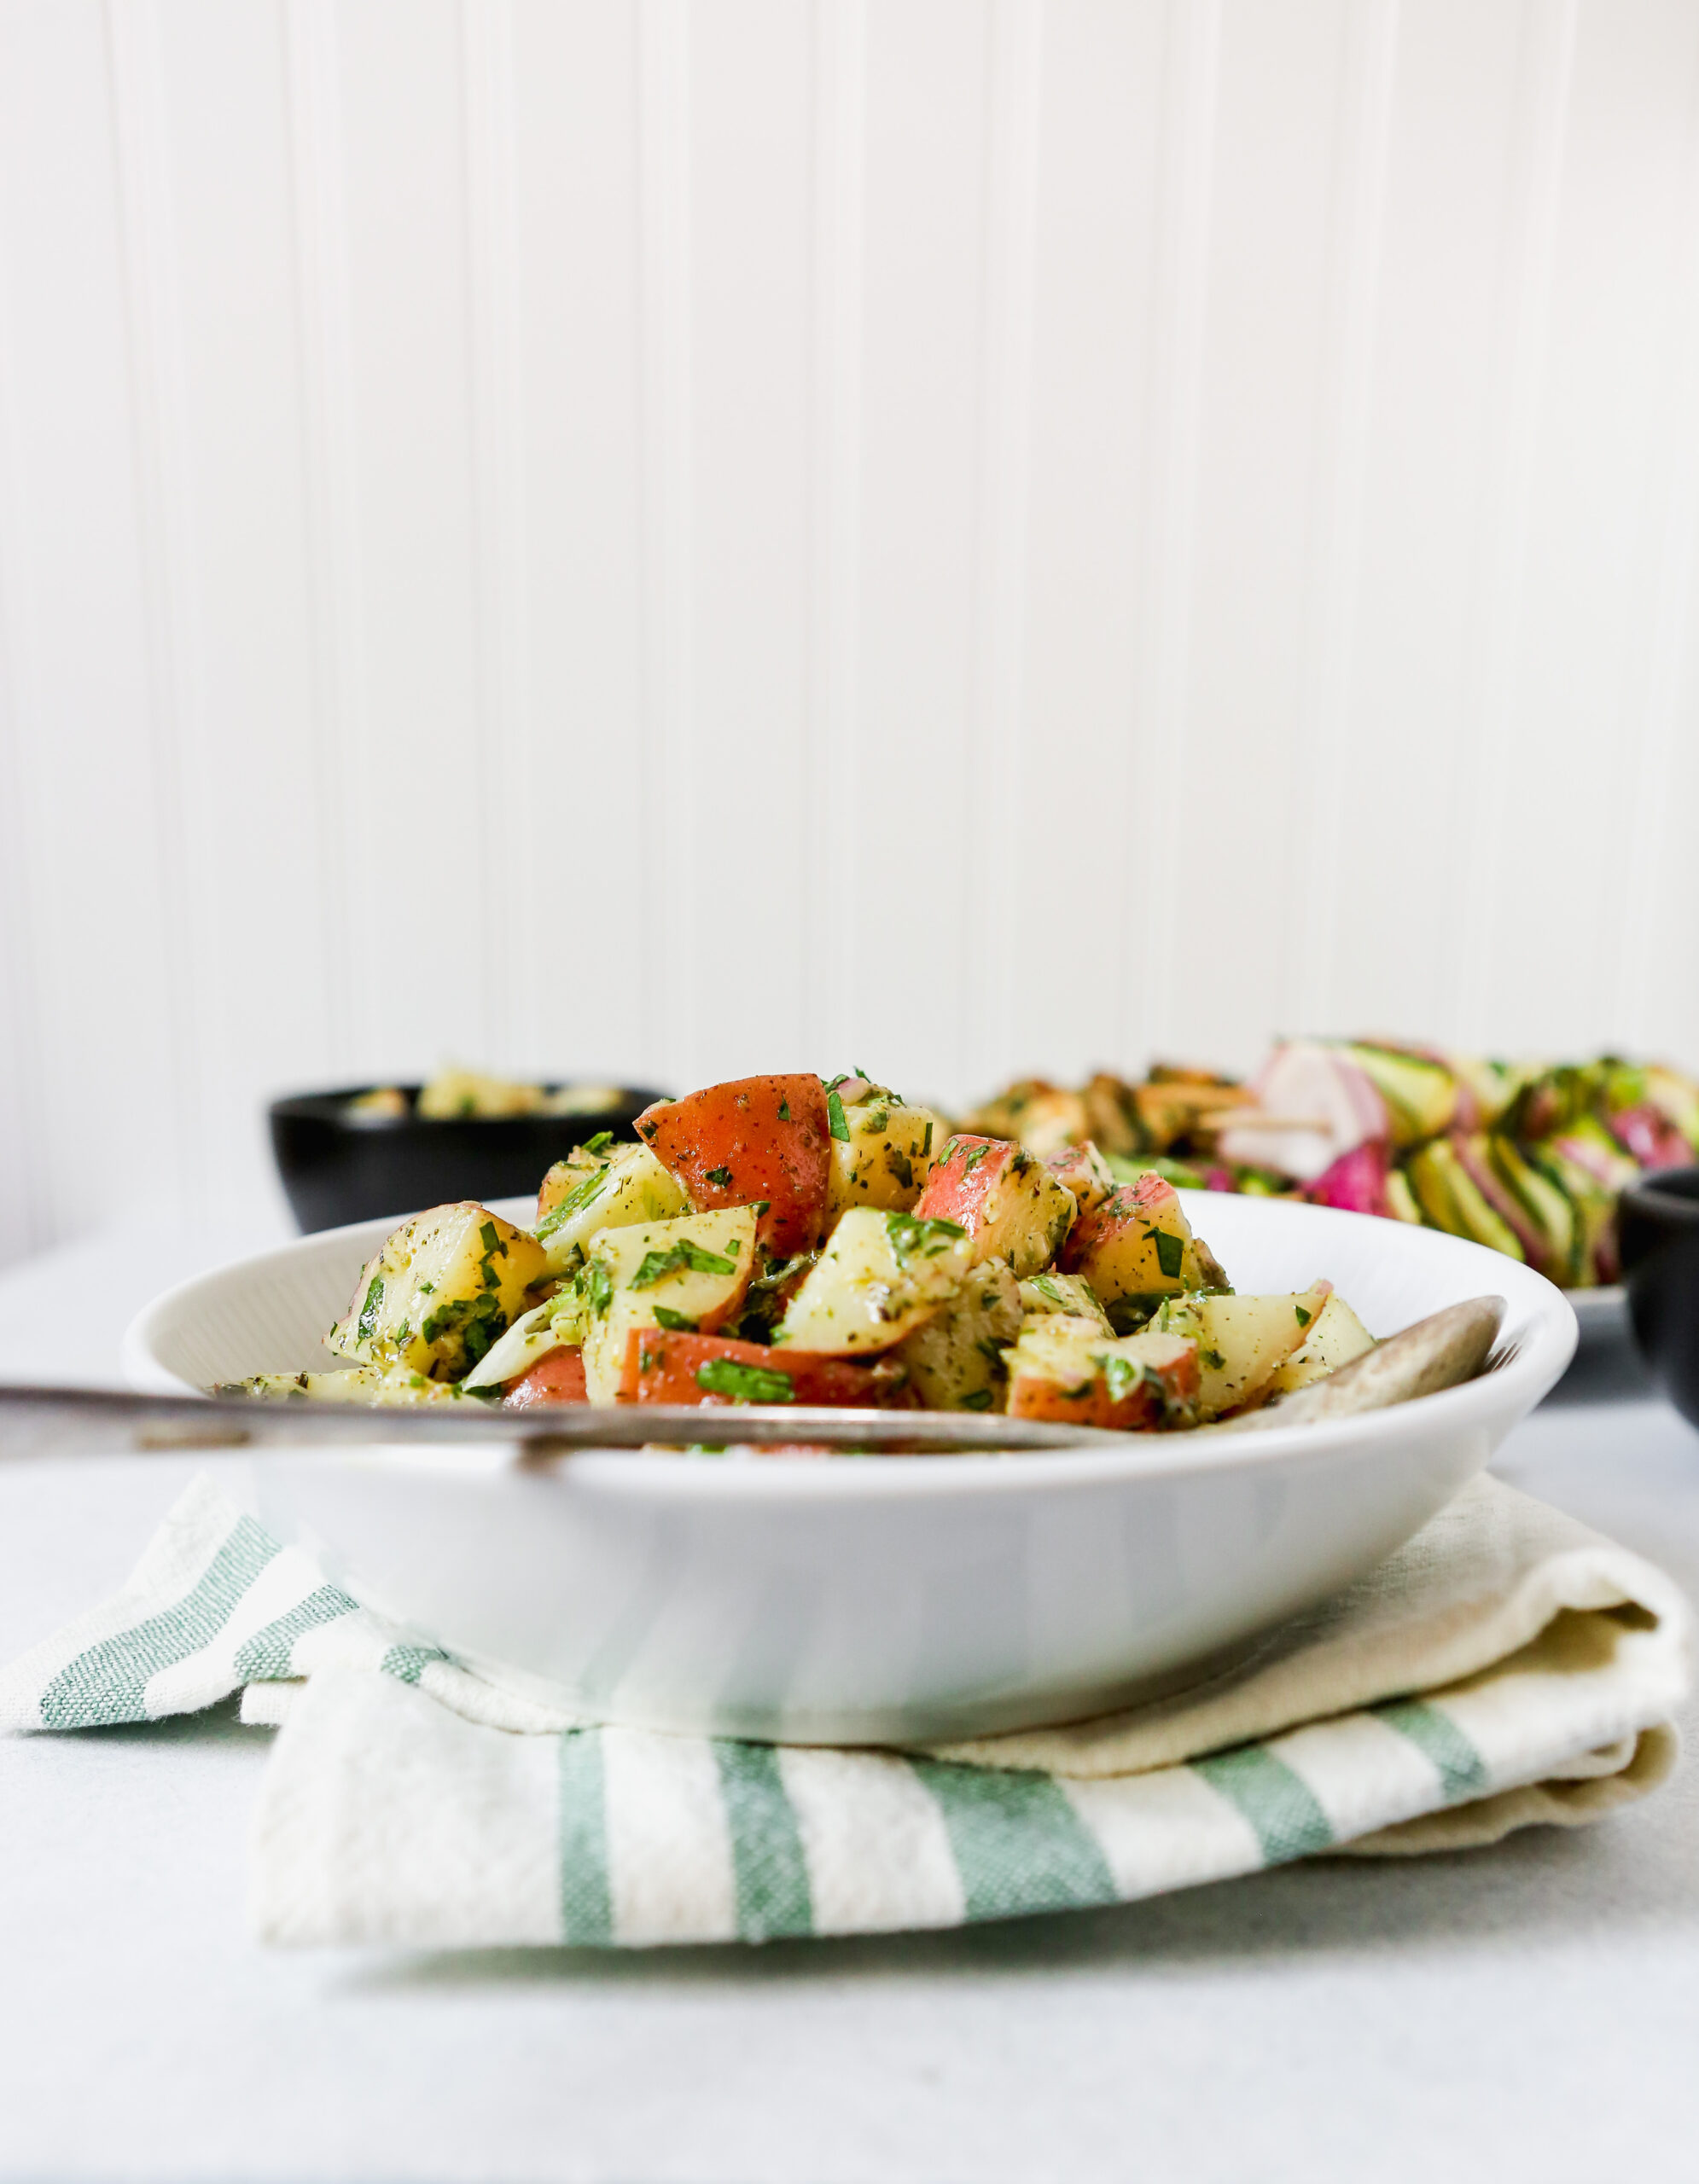 White bowl of Asian potato salad set on a green and white kitchen towel. Food photography